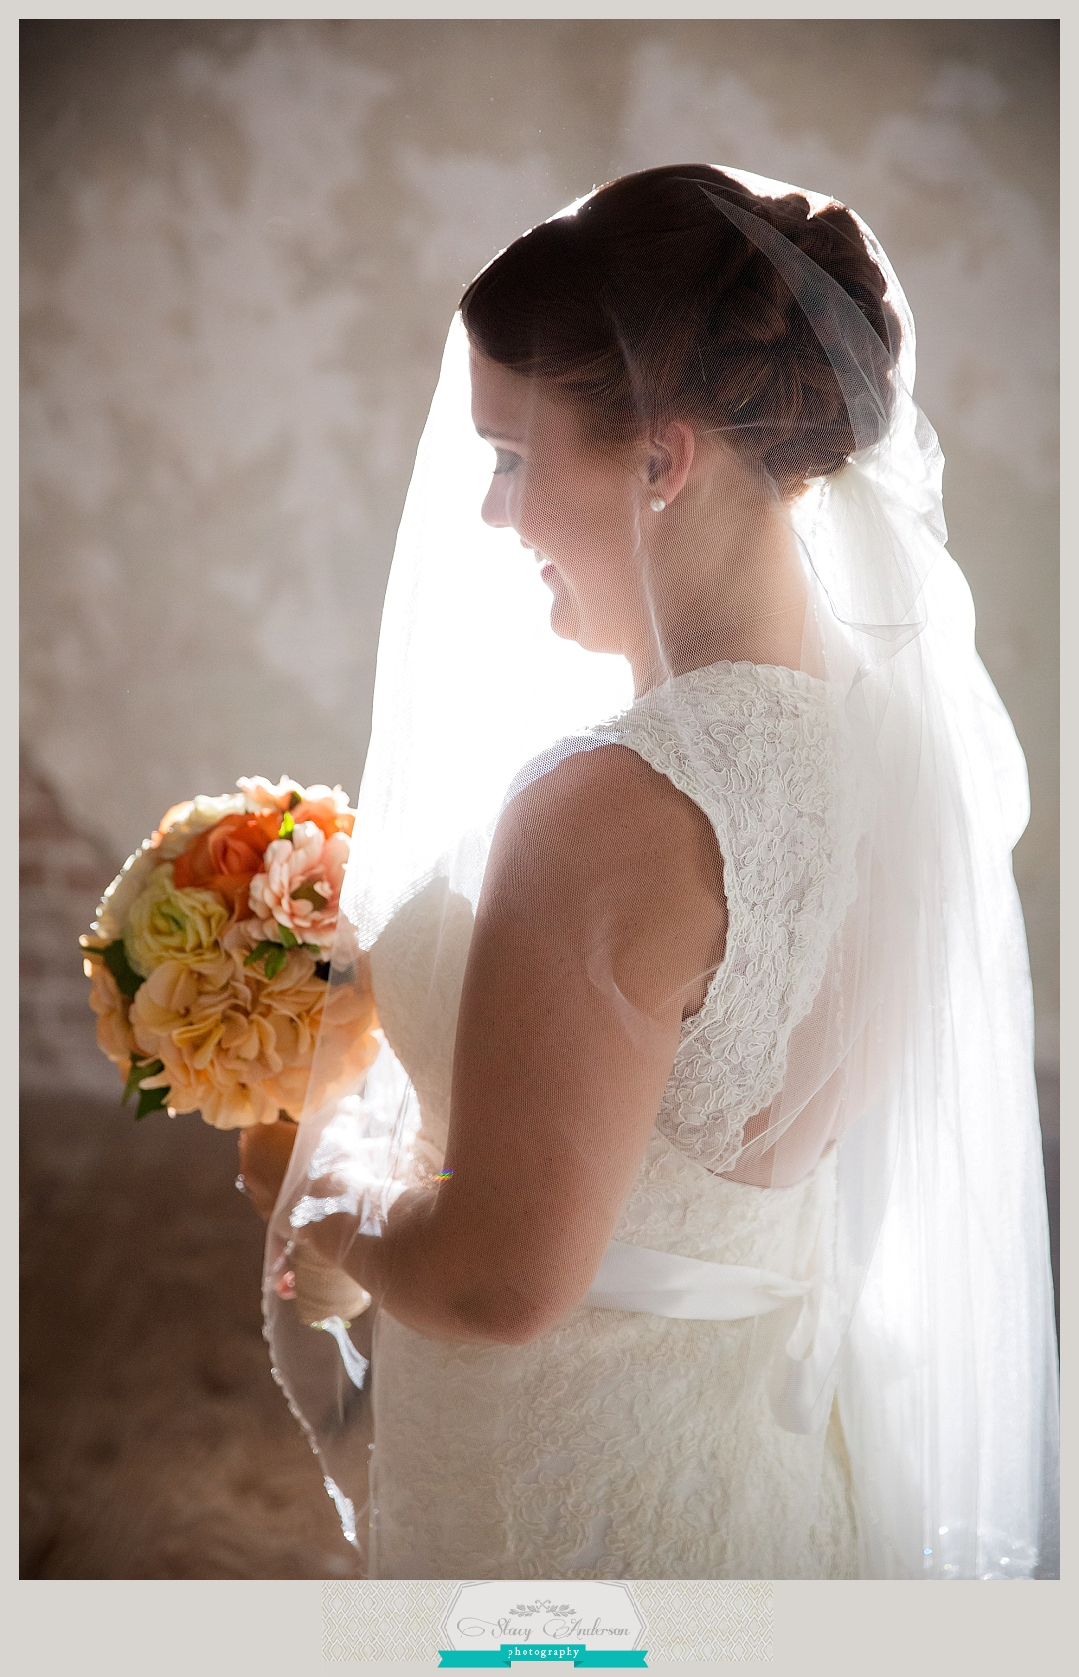 Houston Studio Bridal Wedding Photographer (13)